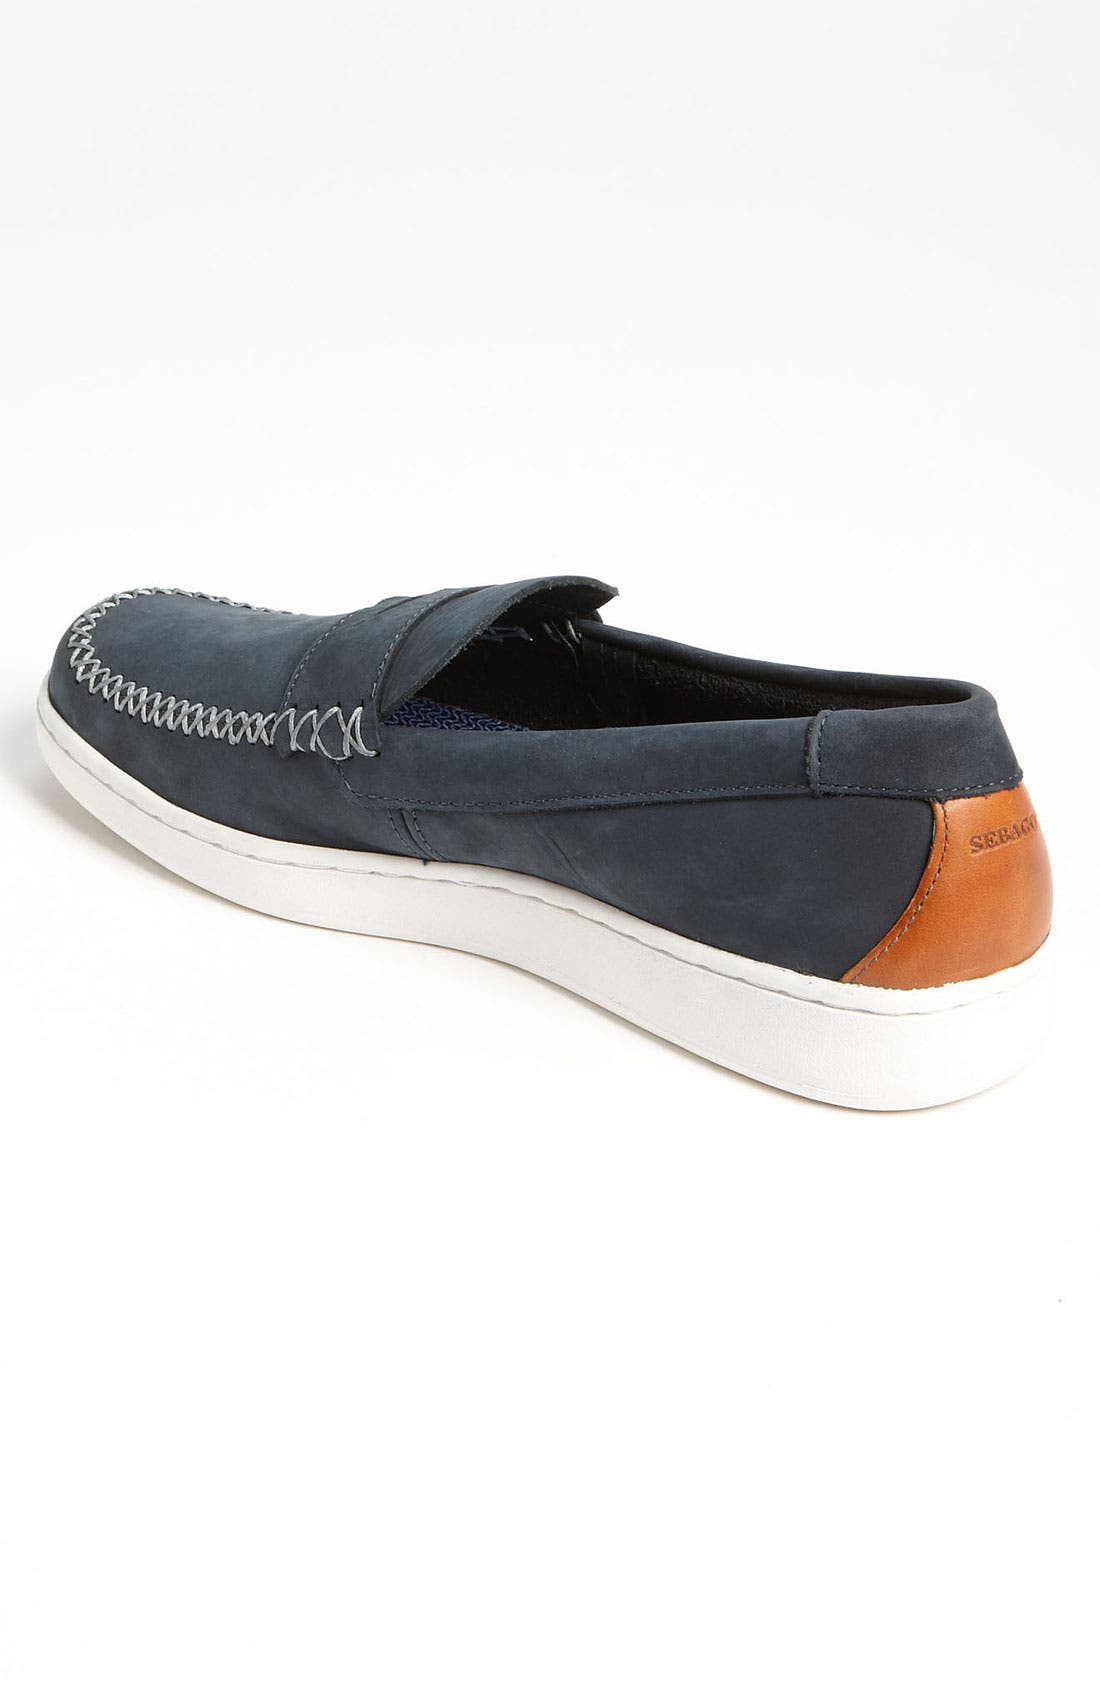 Alternate Image 2  - Sebago 'Wentworth Classic' Loafer